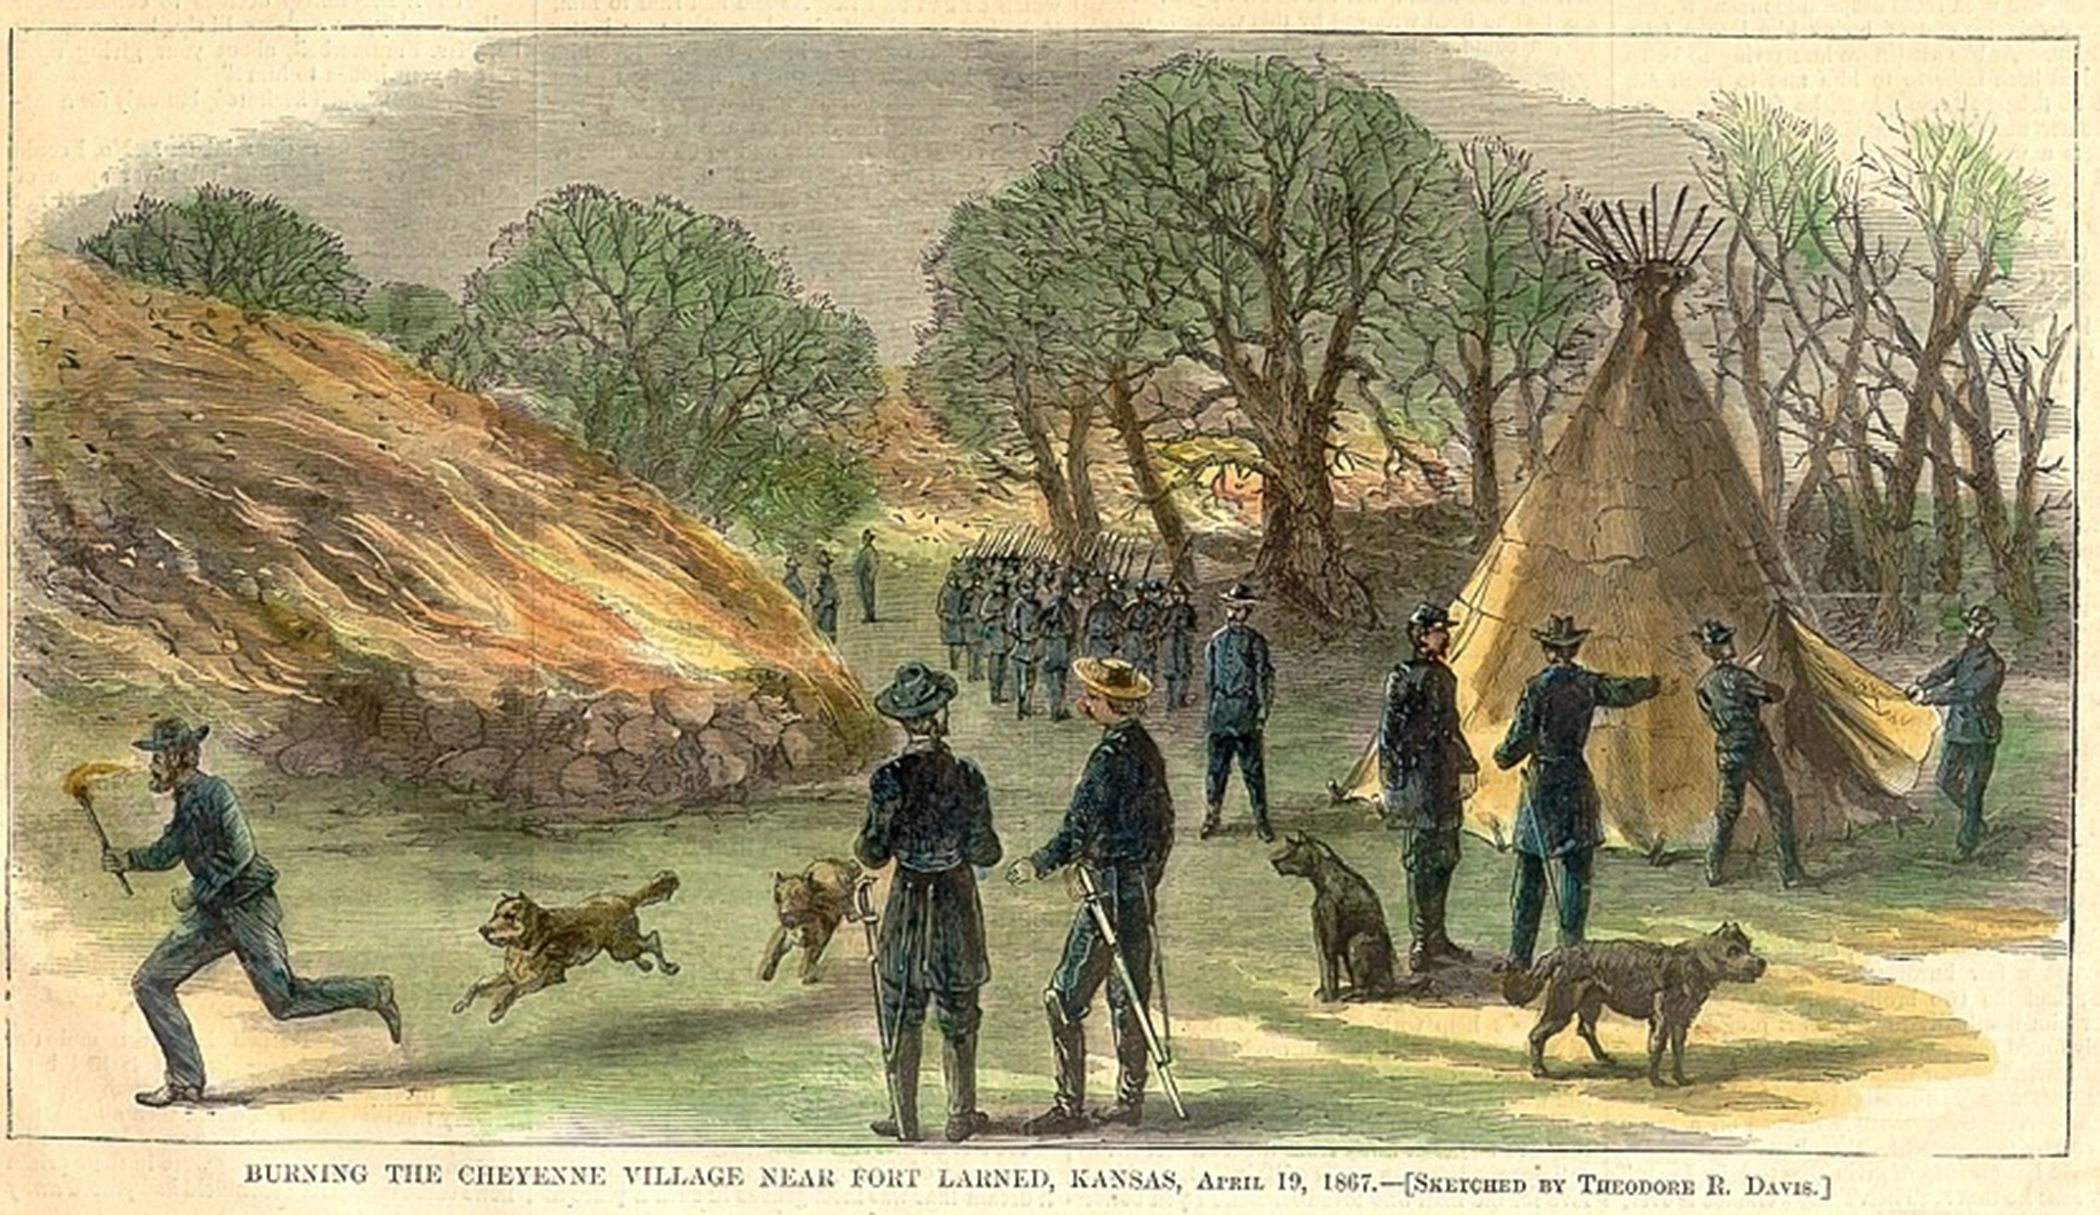 Color image of Harper's Weekly drawing - Burning of Cheyenne-Sioux Indian Village